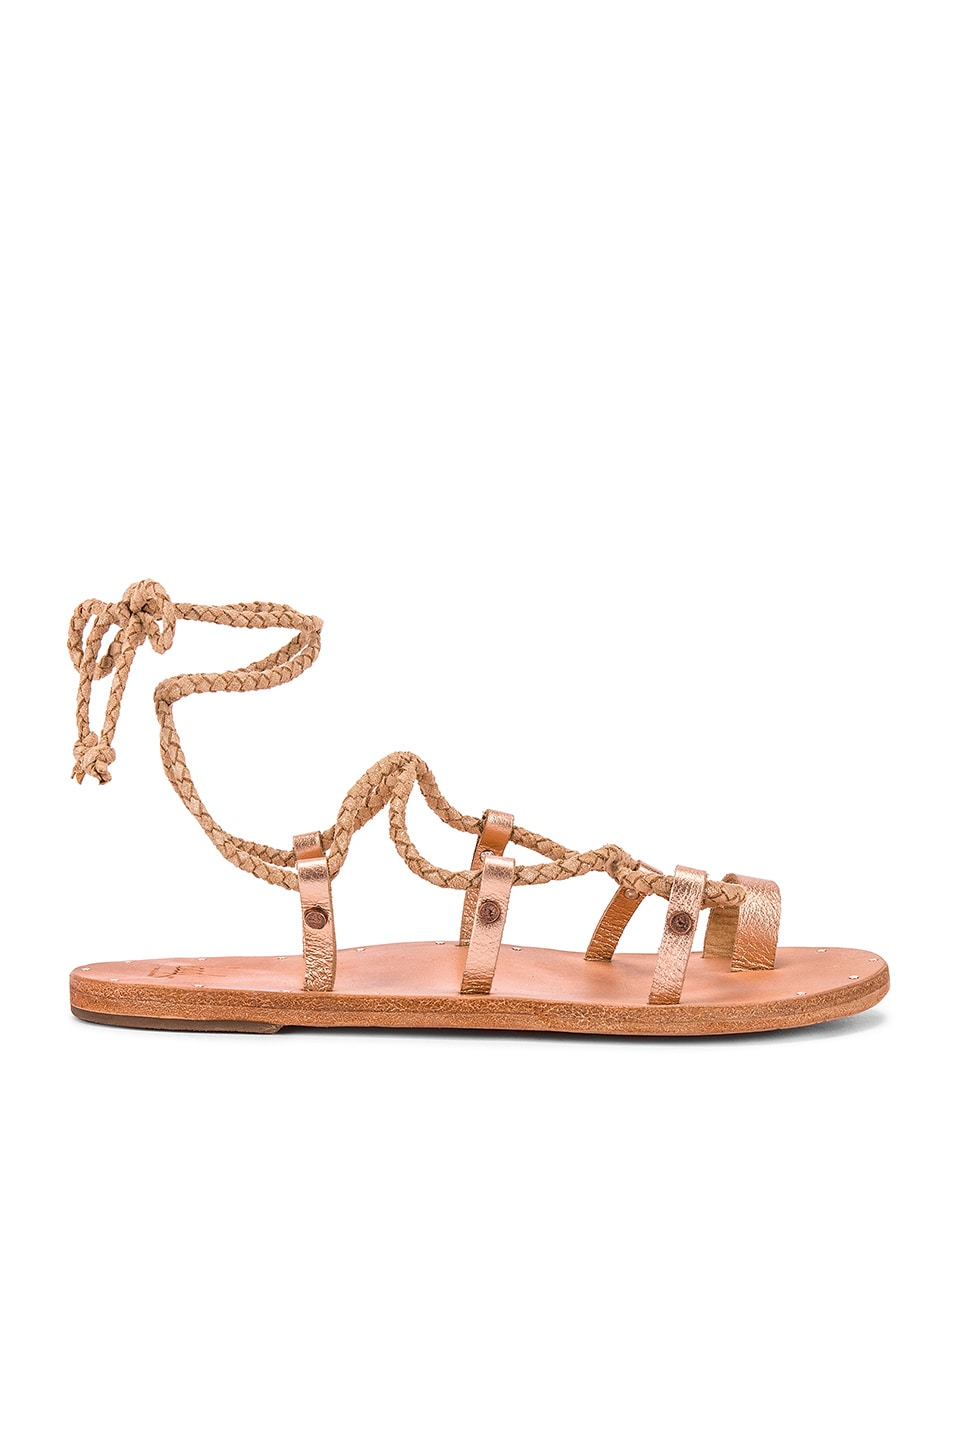 Beek Wren Sandal in Rose Gold & Natural